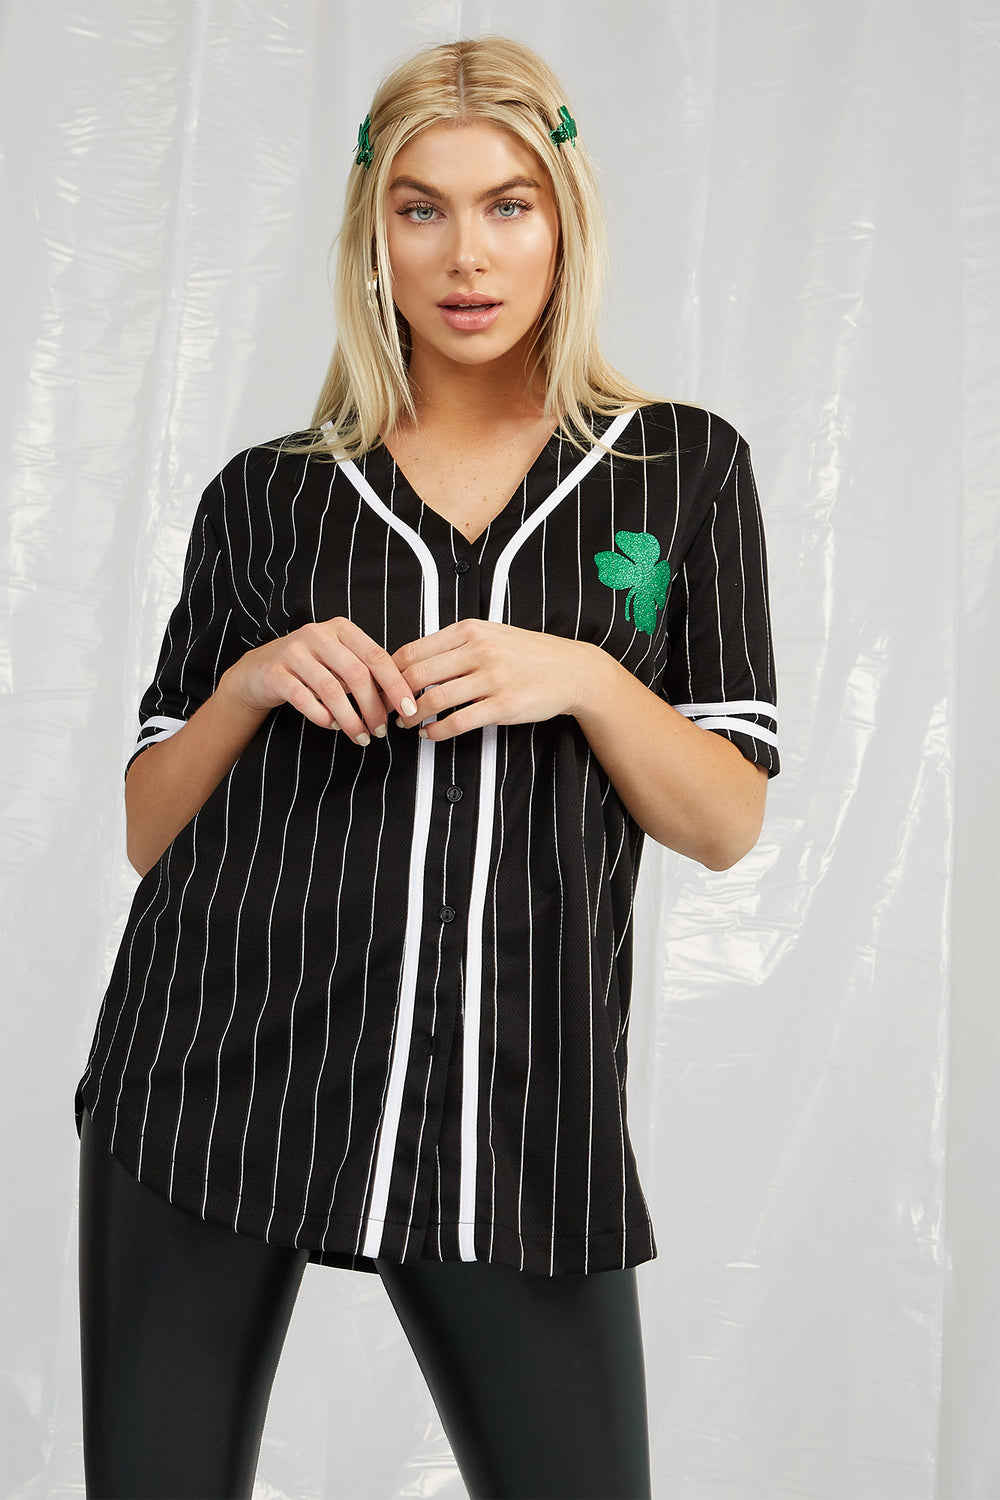 St. Patrick's Day Lucky Baseball Jersey Black with White